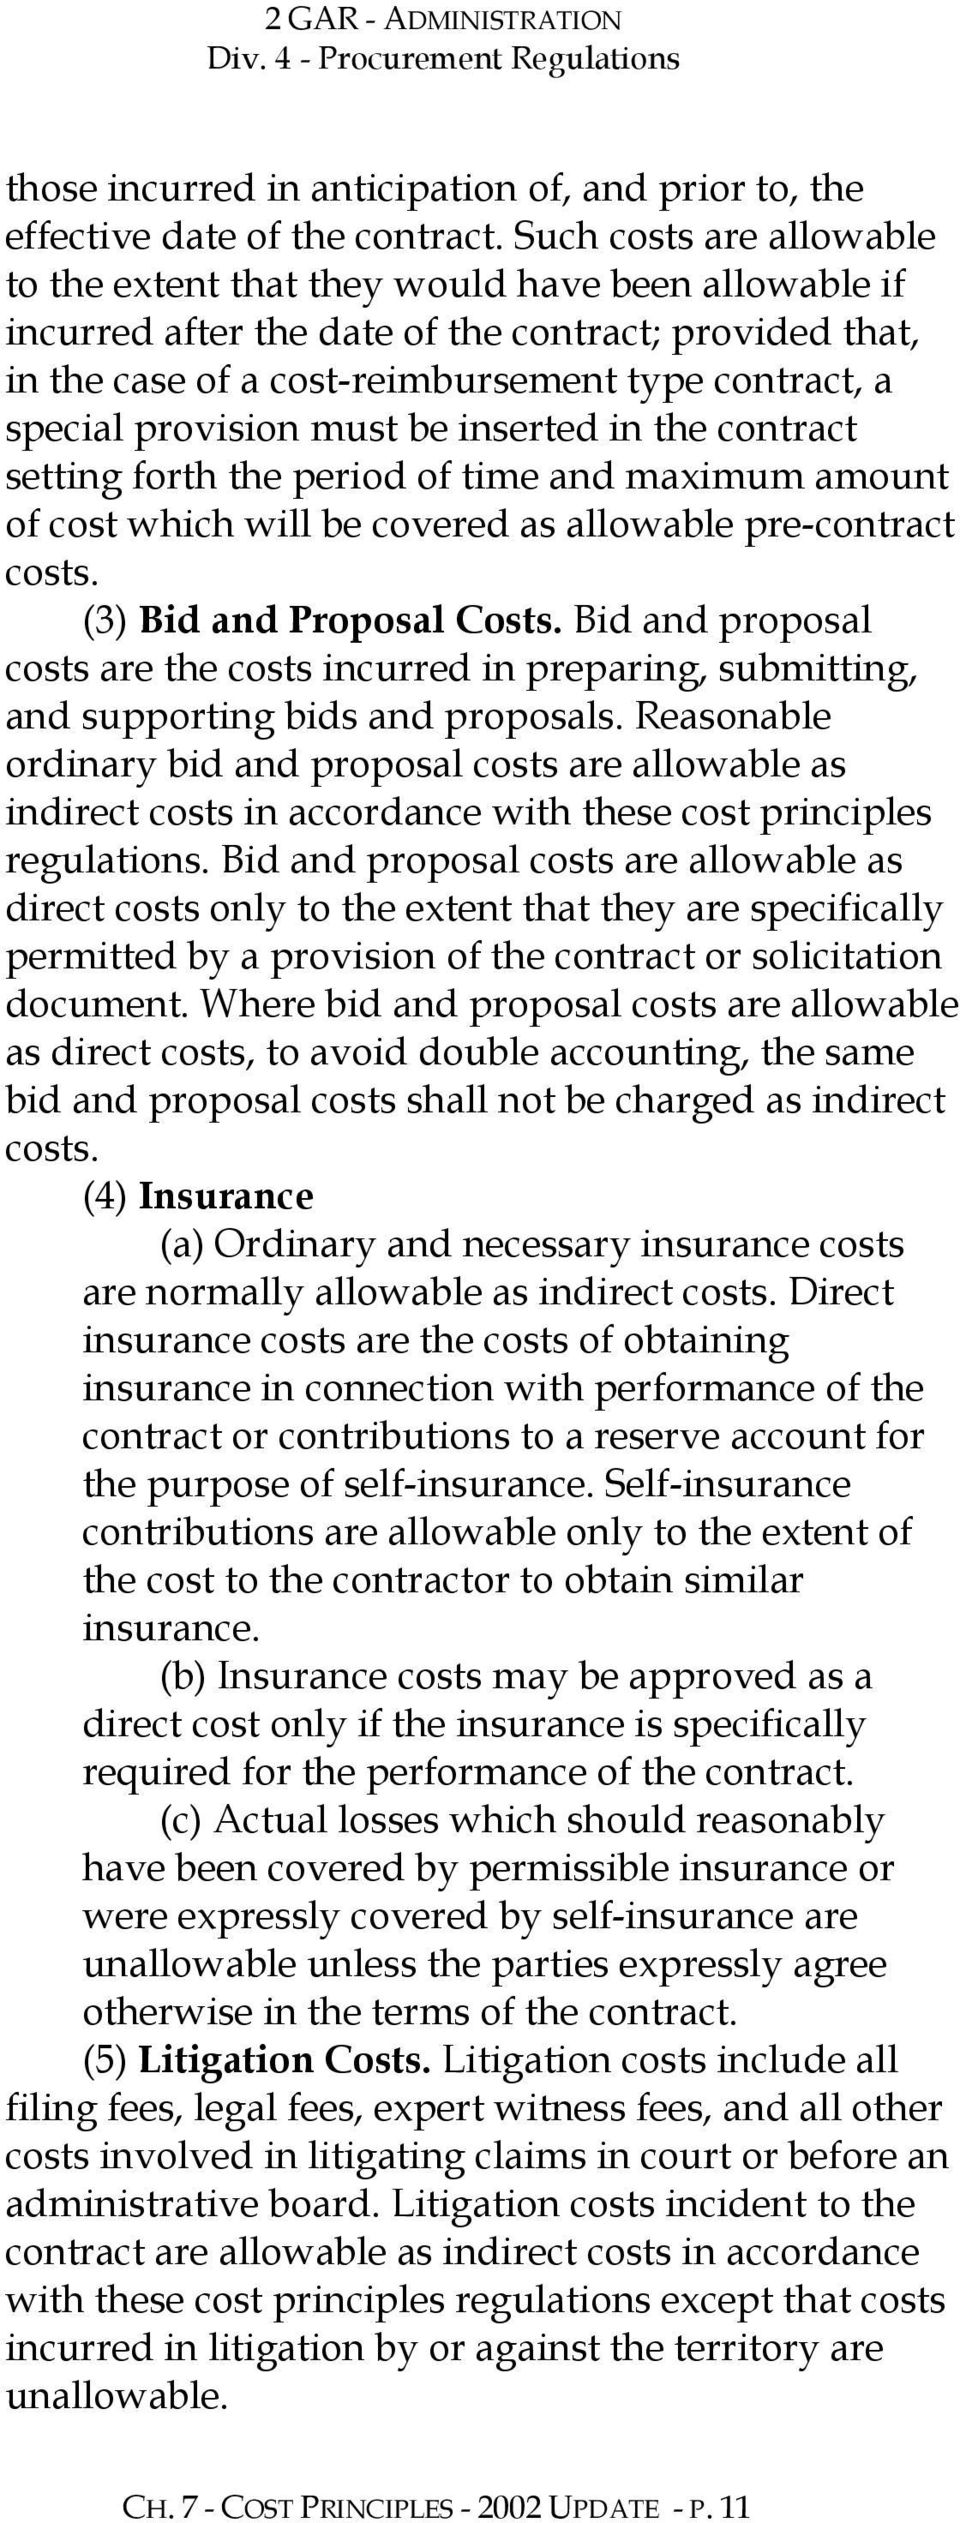 provision must be inserted in the contract setting forth the period of time and maximum amount of cost which will be covered as allowable pre-contract costs. (3) Bid and Proposal Costs.